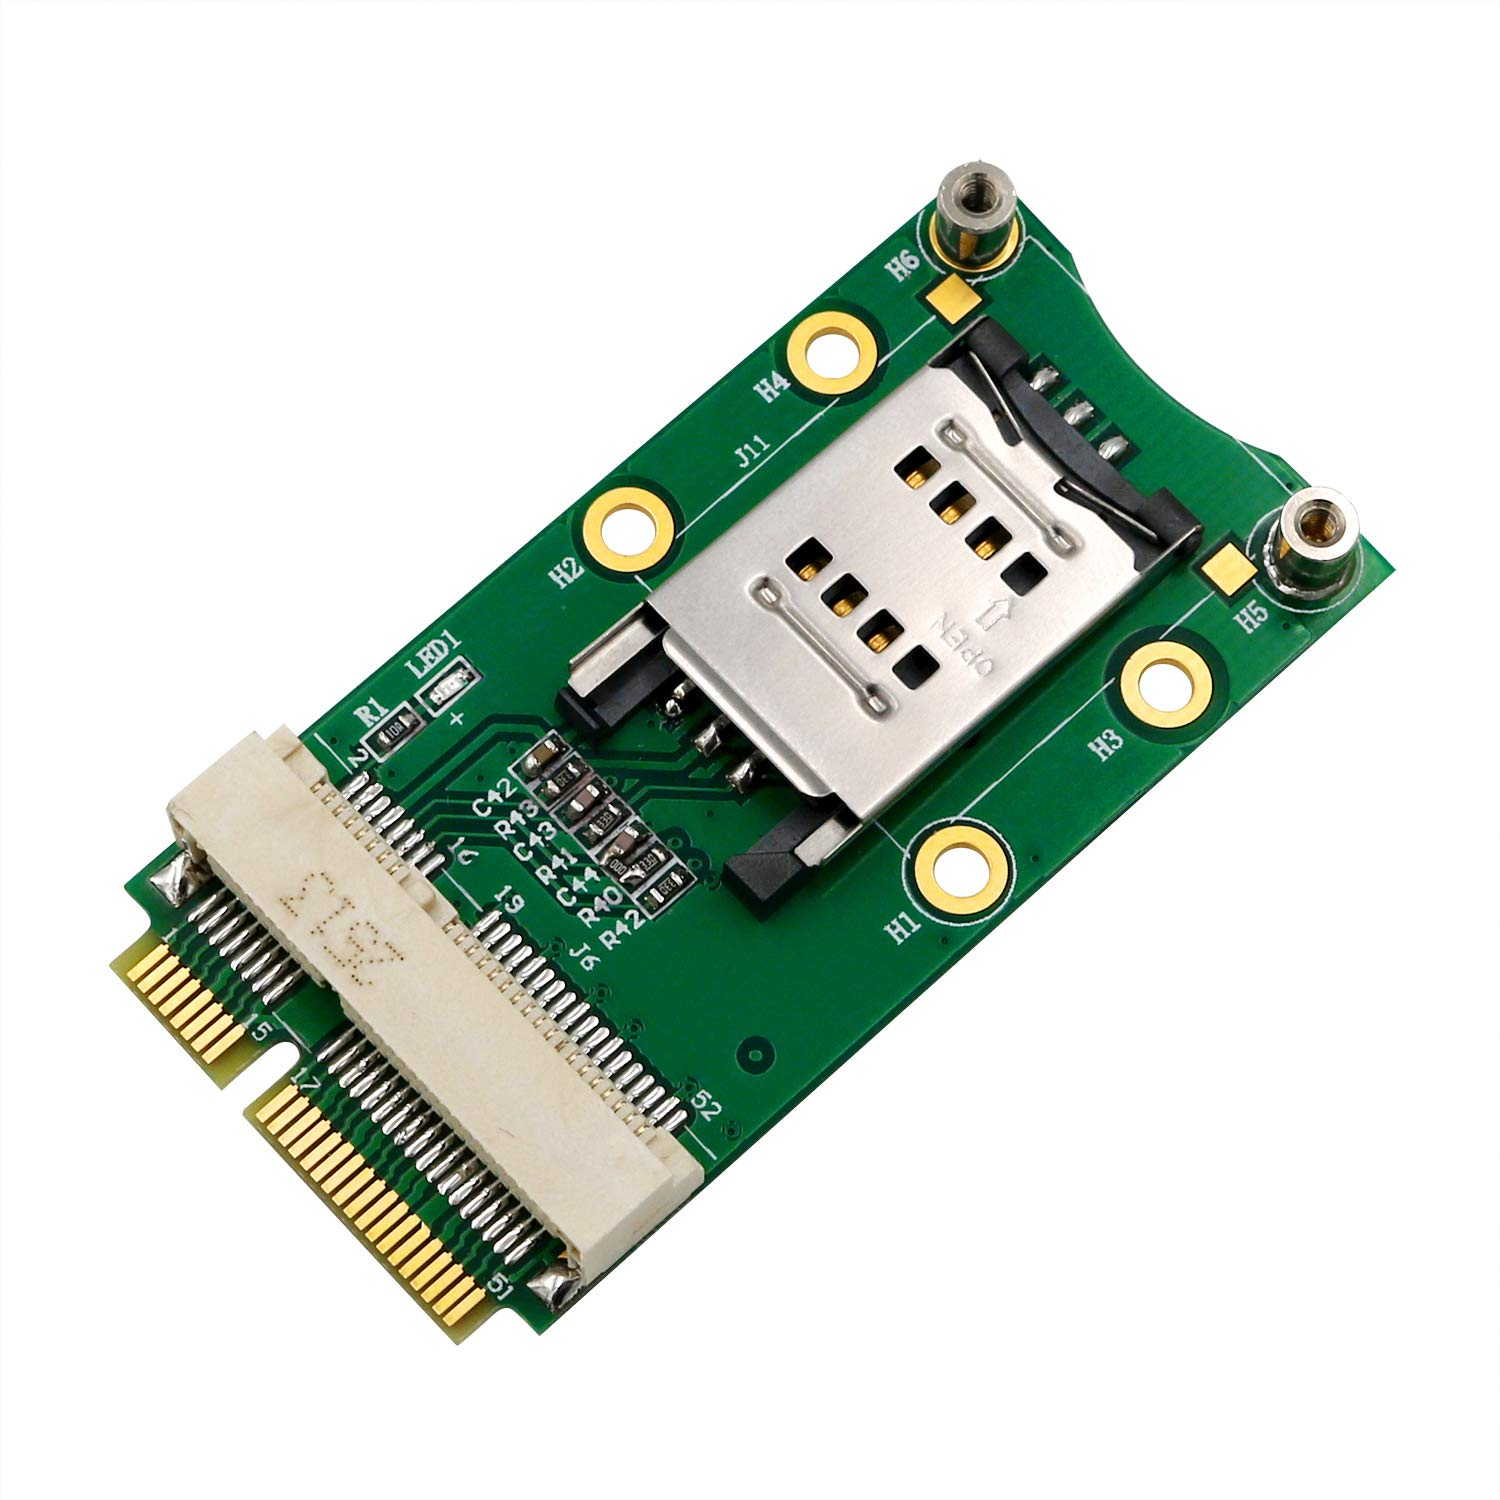 Mini Pcie Superplus Adapter With Sim Card Slot For 3g/4g,wwa